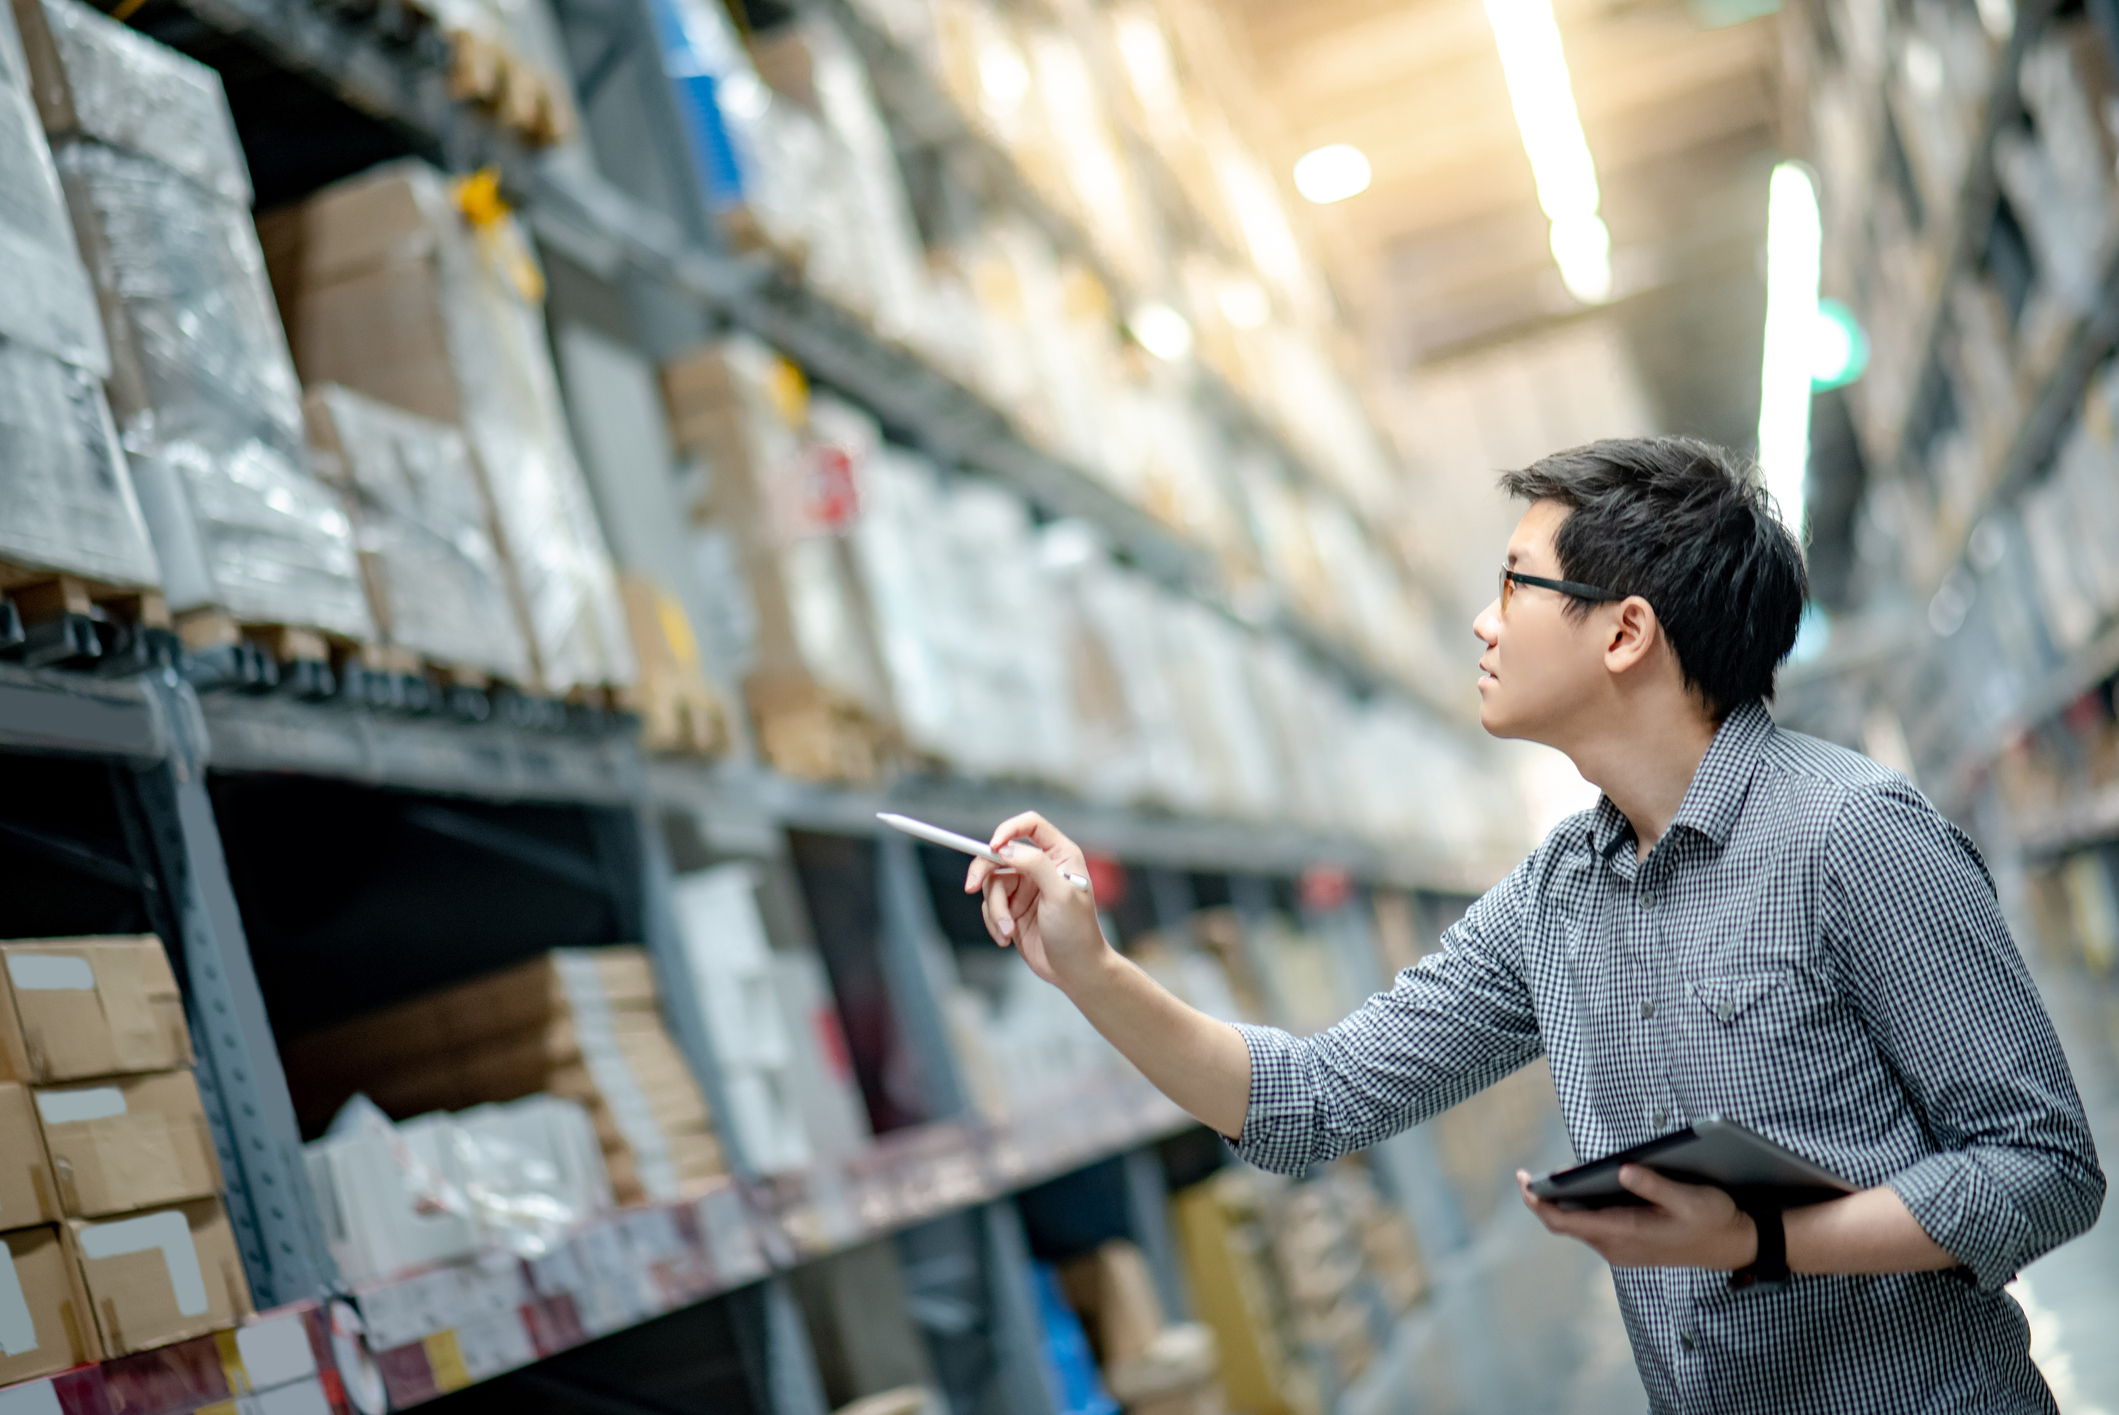 Inventory management is all about good habits